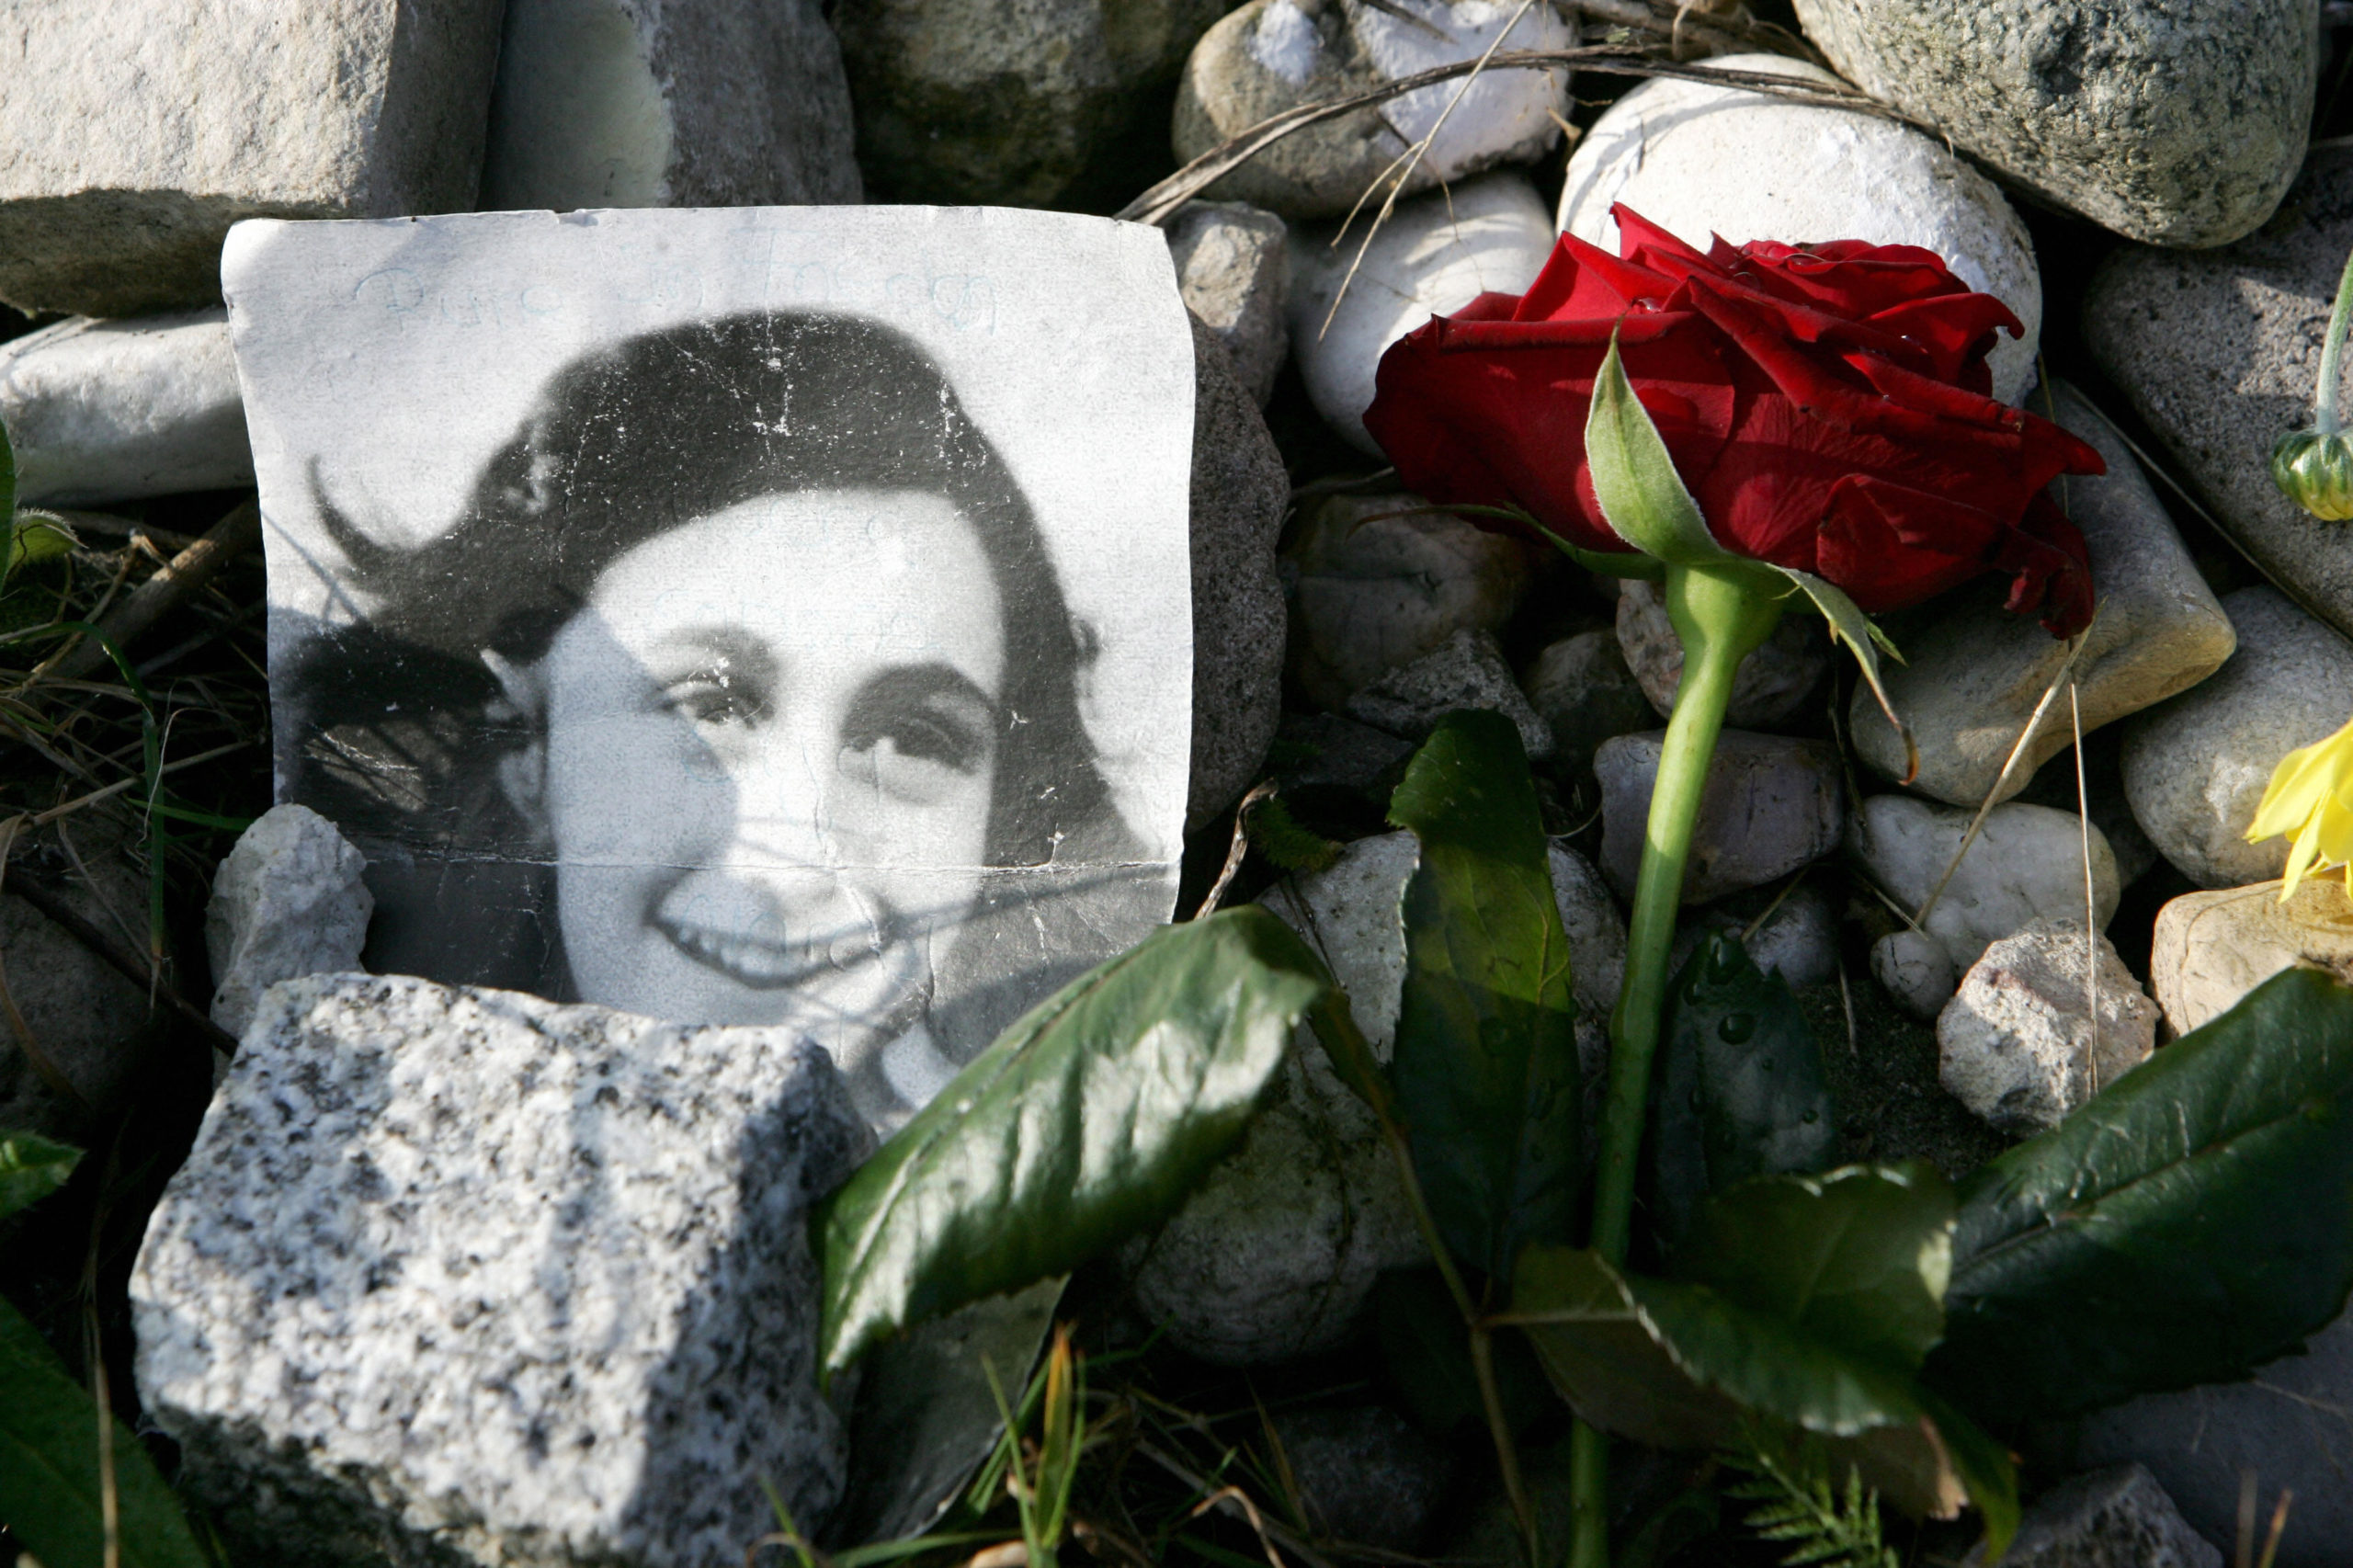 A picture of Anne Frank lies in front of the memorial stone for Jewish girl Anne Frank, author of